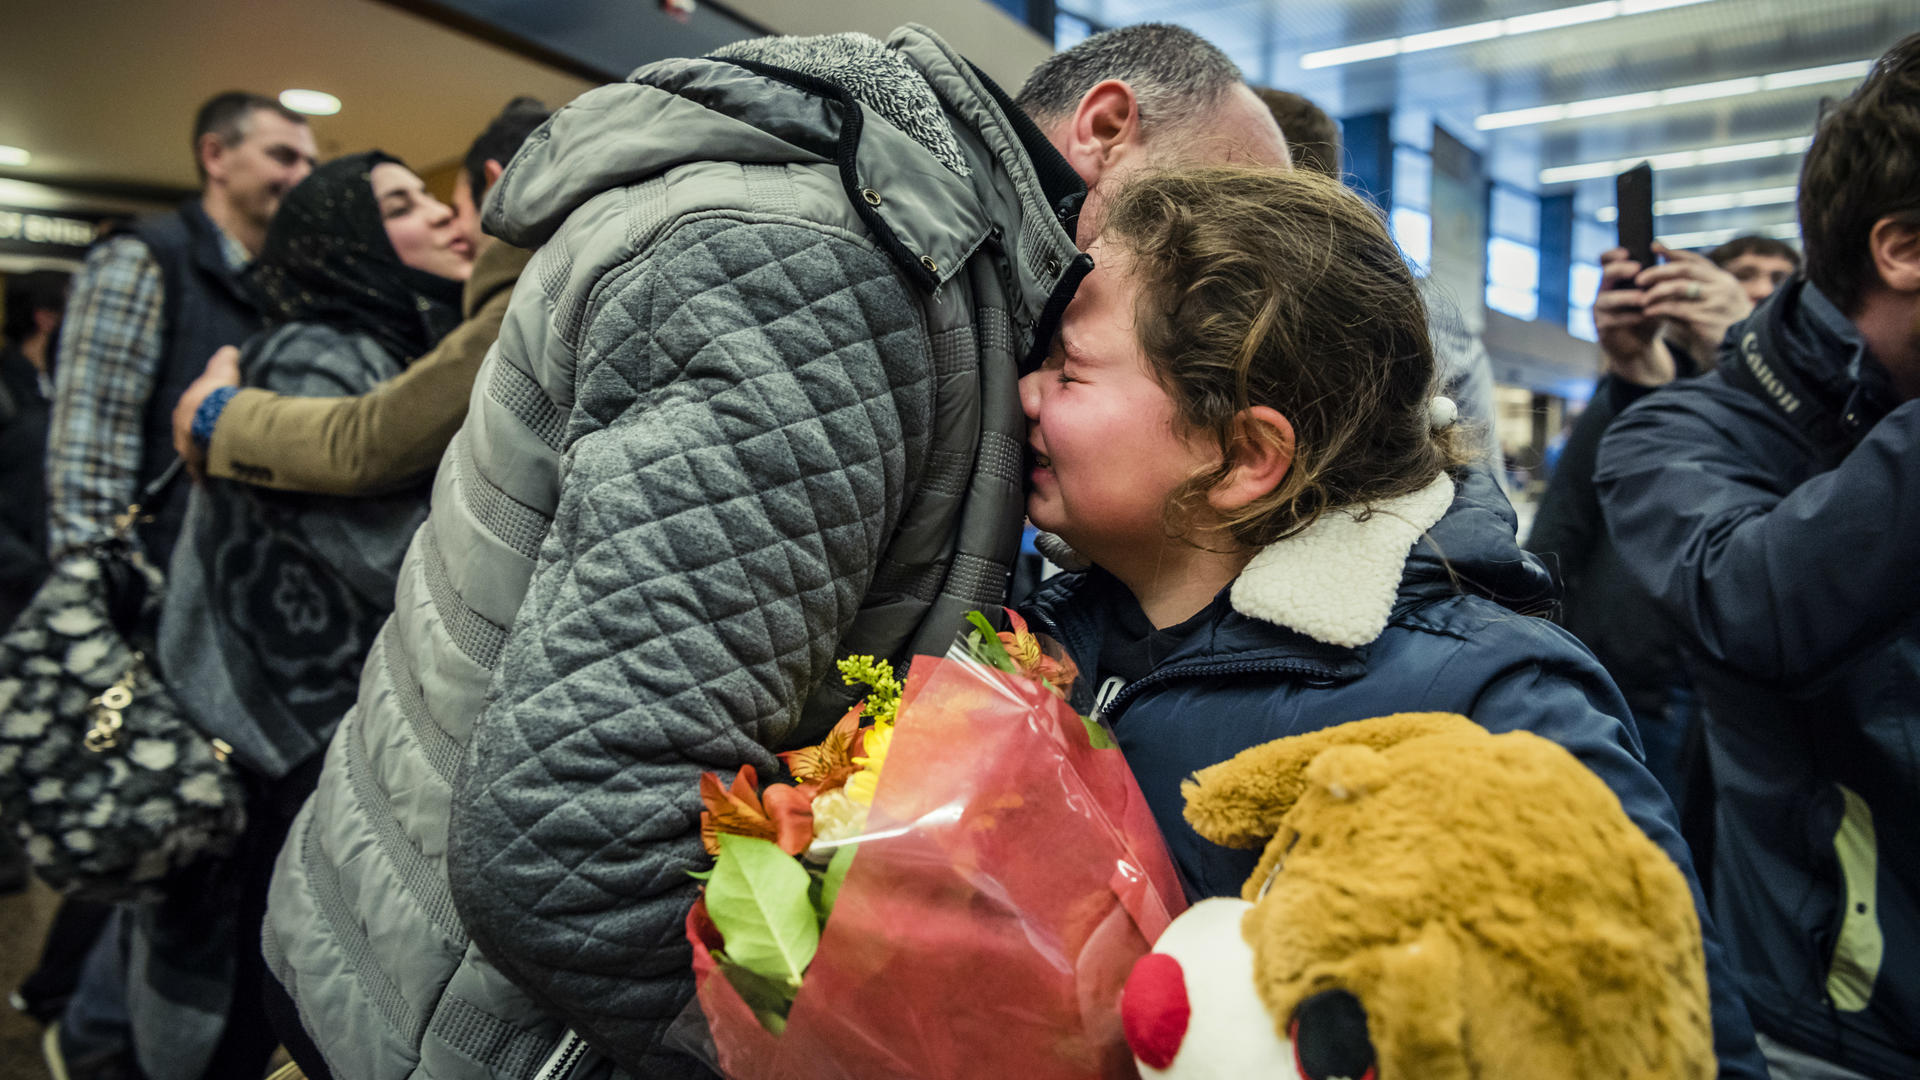 A Syrian family is reunited in a Seattle airport after the travel ban was challenged